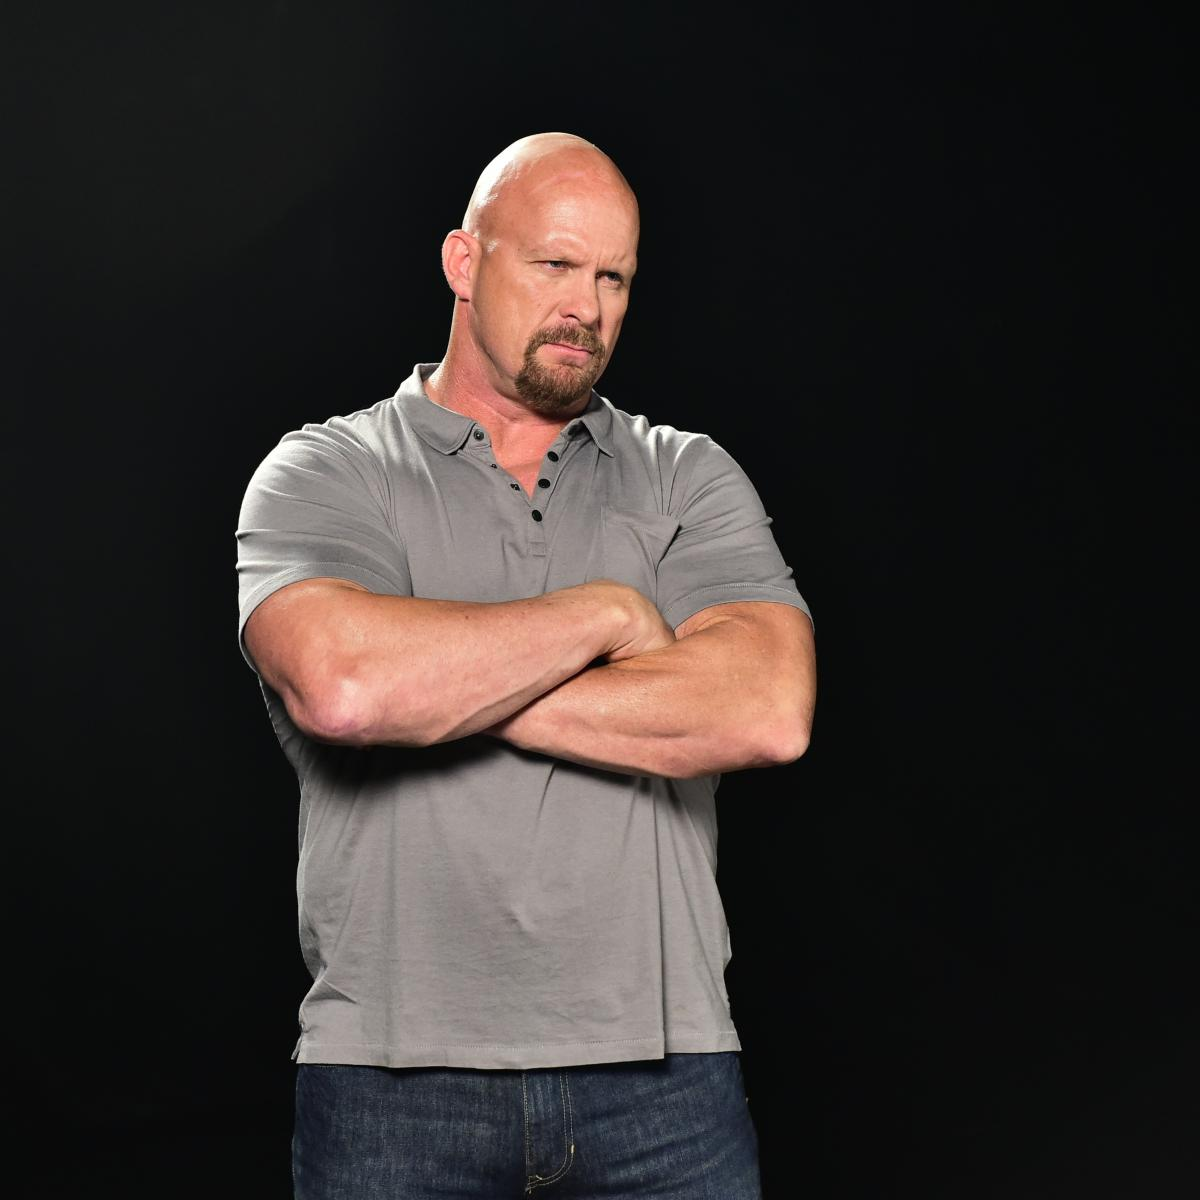 Report: WWE Moves Raw on '3:16 Day,' Featuring Stone Cold, to Performance Center